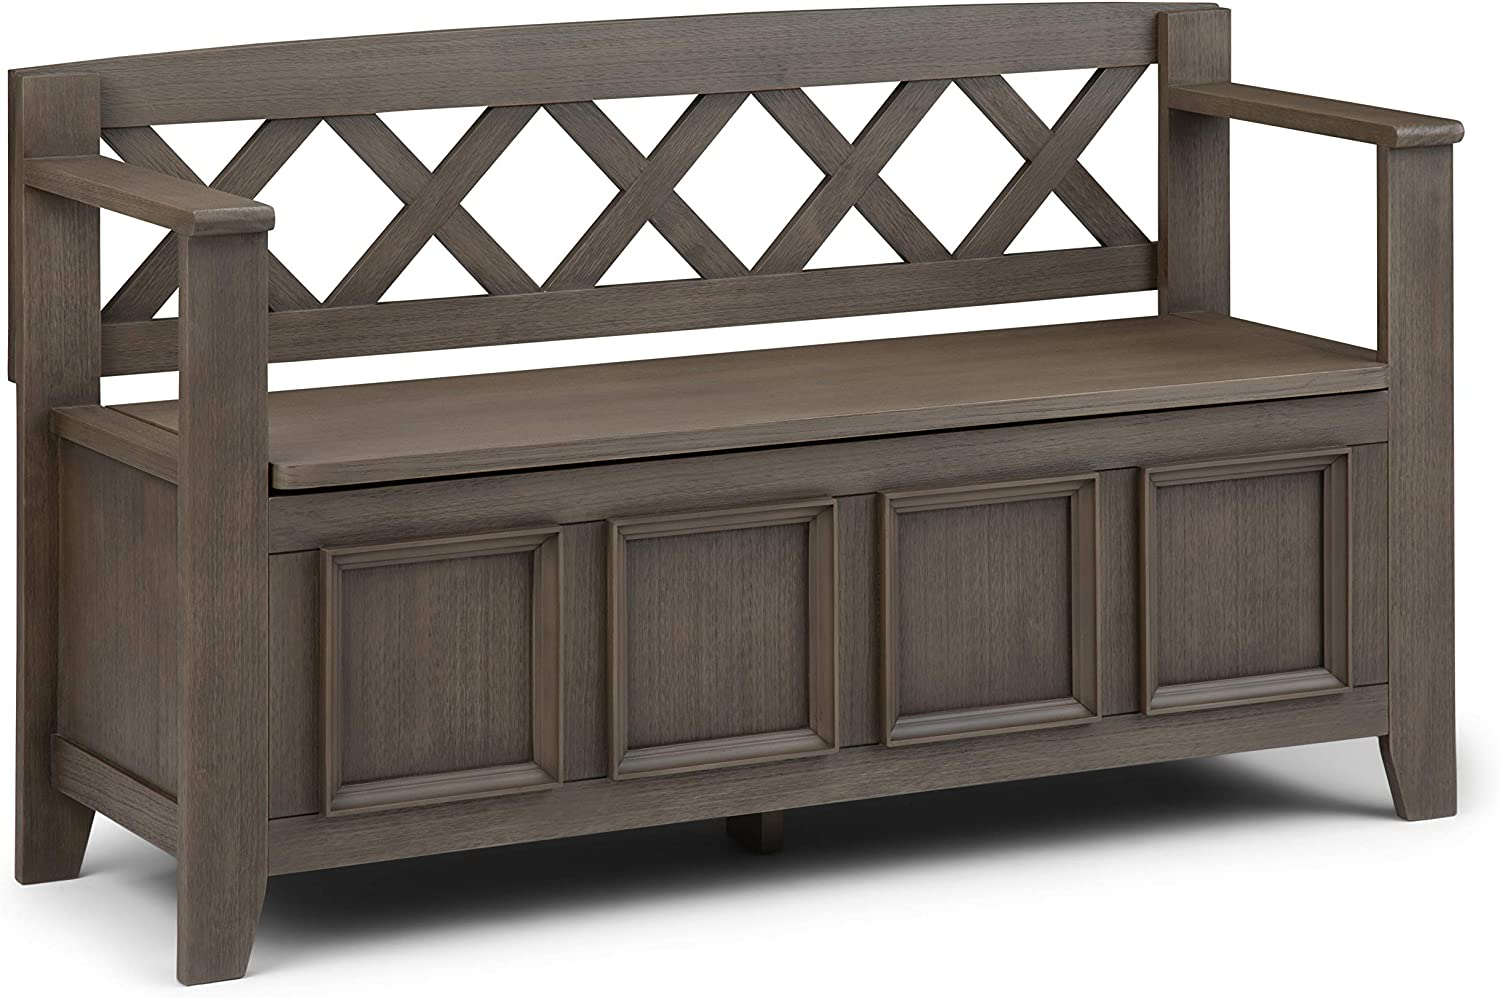 SIMPLIHOME Amherst SOLID WOOD 48 inch Wide Entryway Storage Bench with Safety Hinge, Multifunctional, Transitional, in Farmhouse Grey